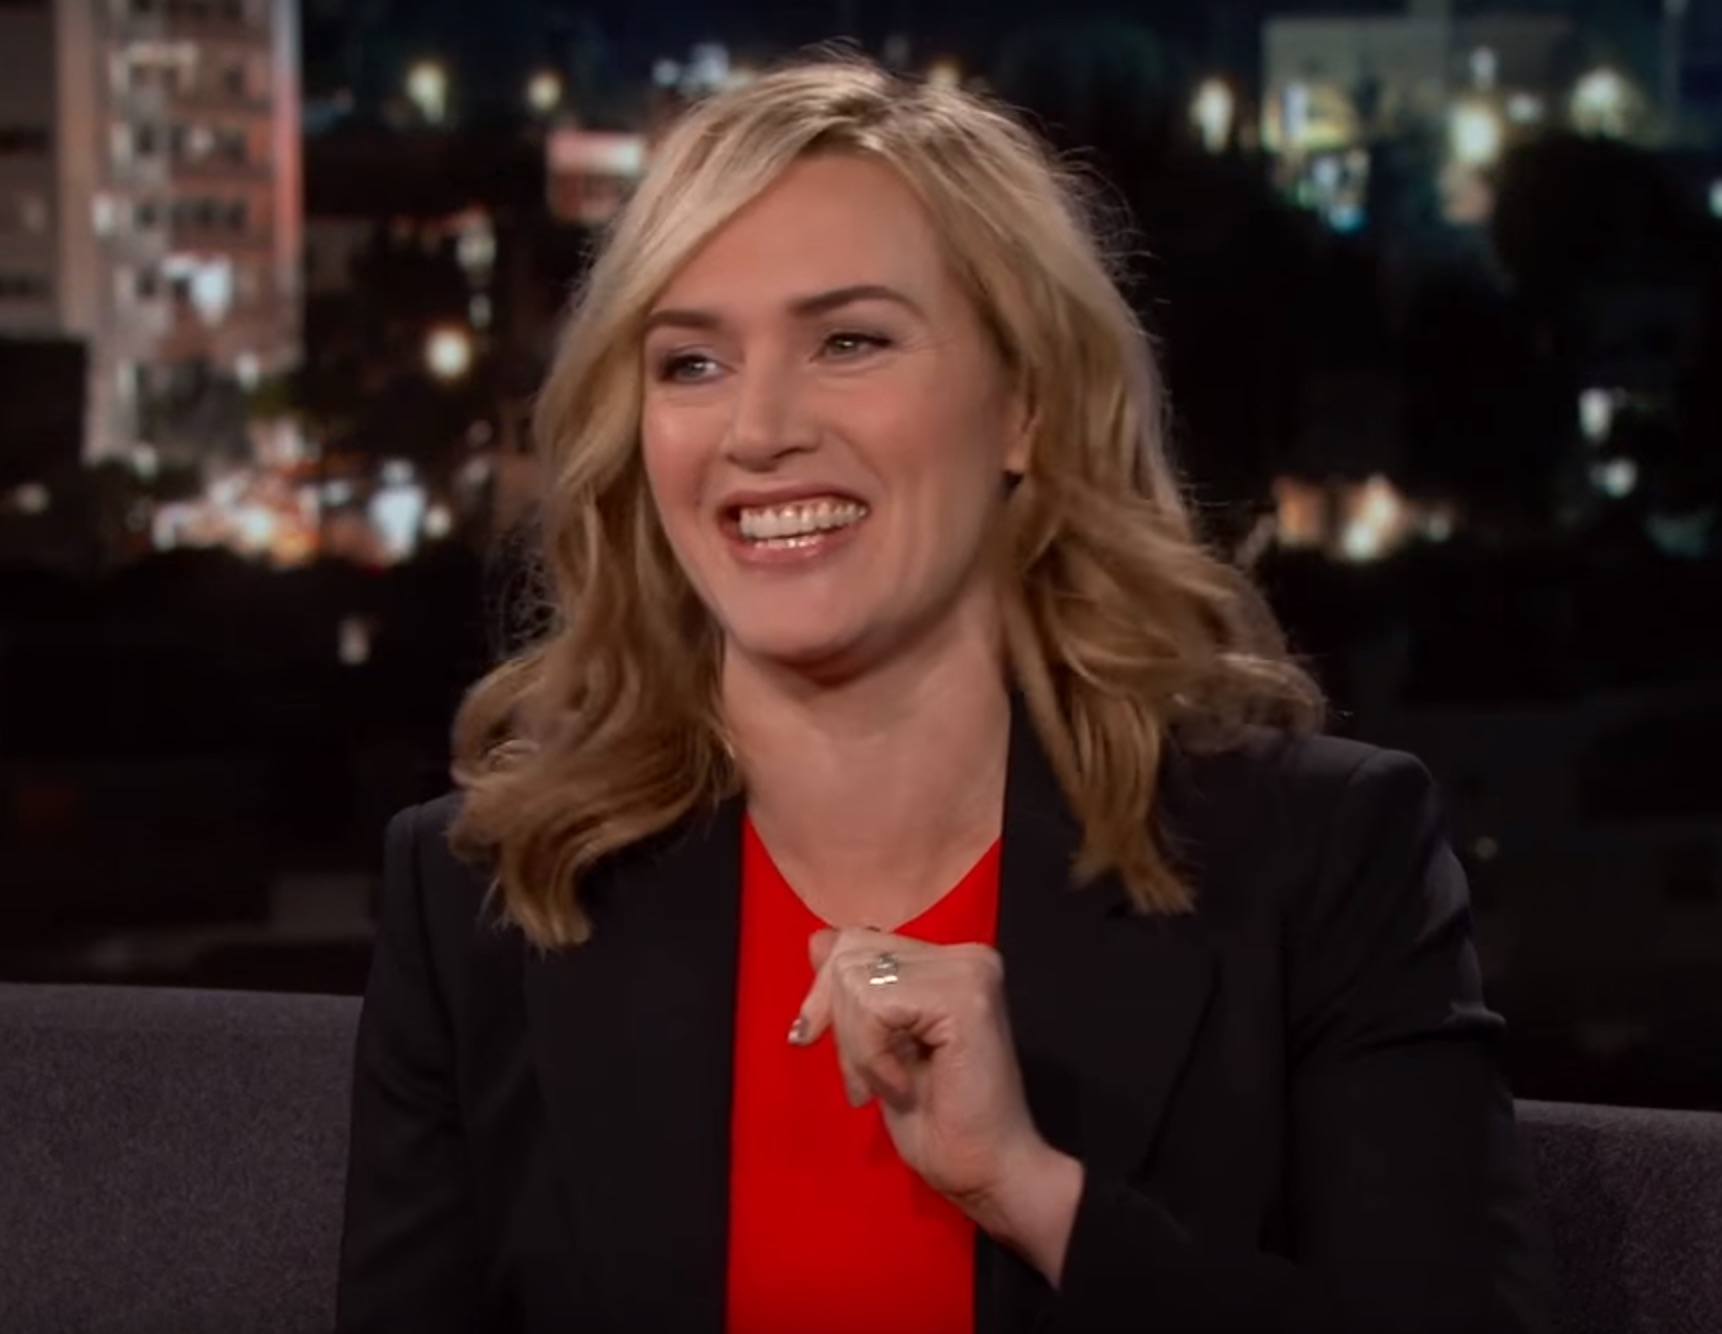 Kate Winslet confirms that winning awards feels as awesome as it looks